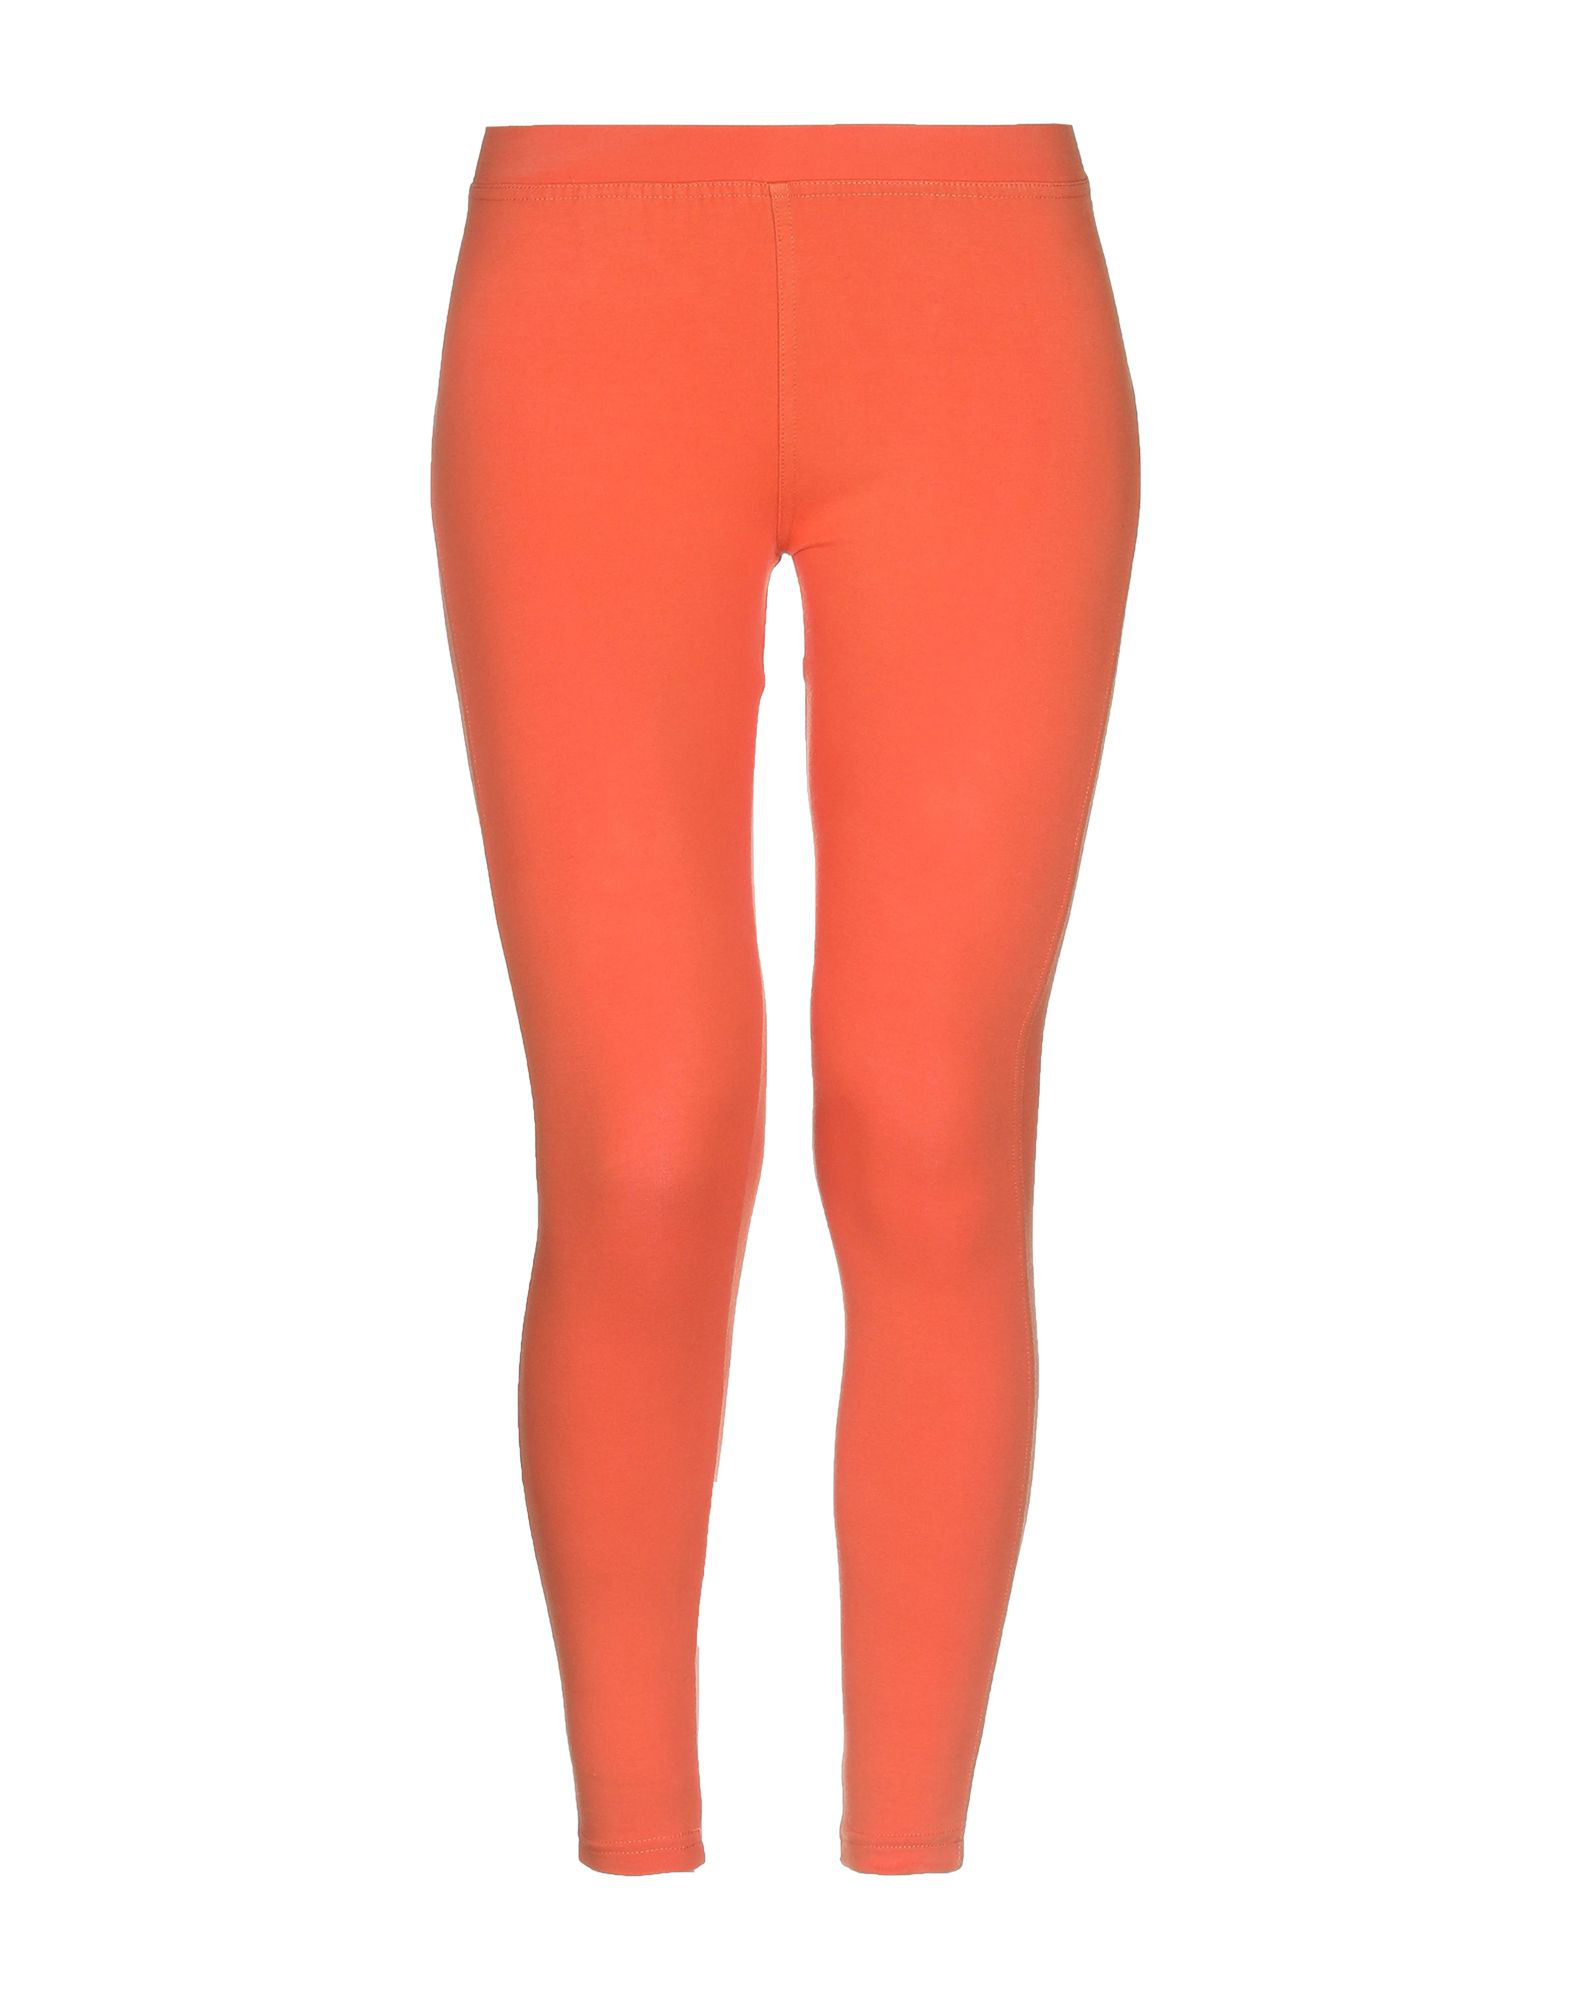 taglia 40 71bc2 cebf1 Leggings in Orange